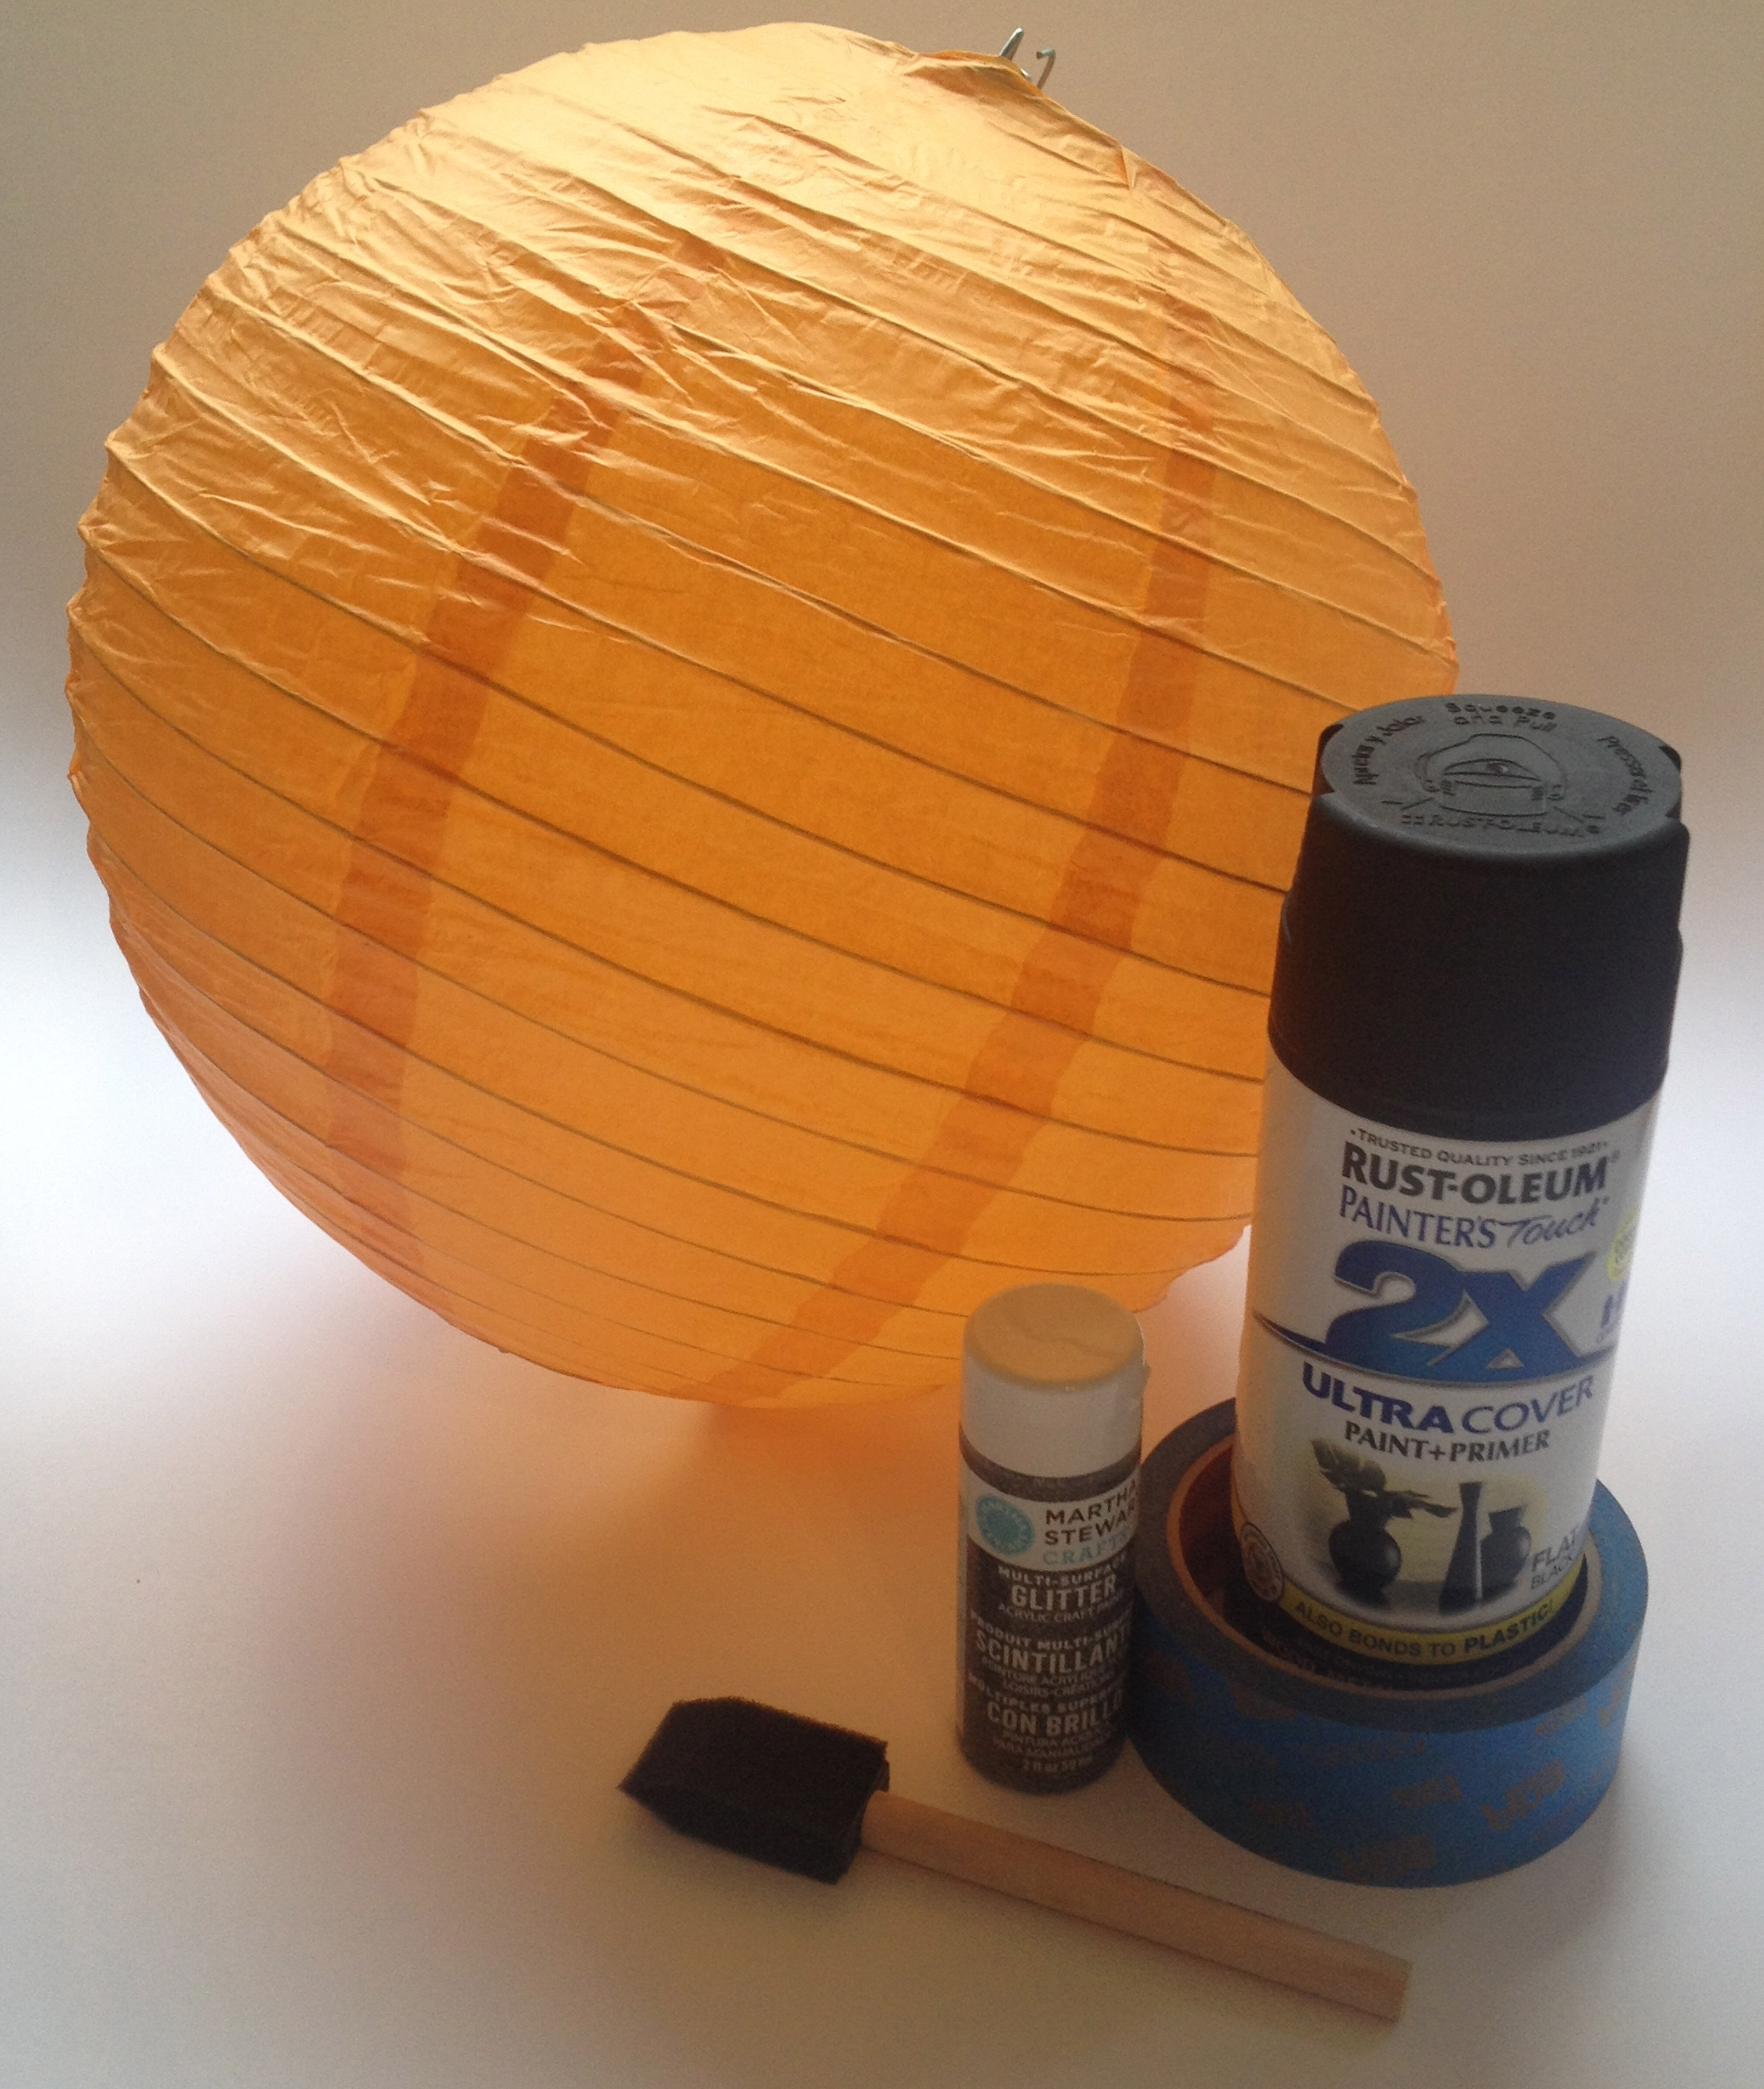 Painted paper lantern 3 days of halloween crafting jen - Paper lantern paint color ...